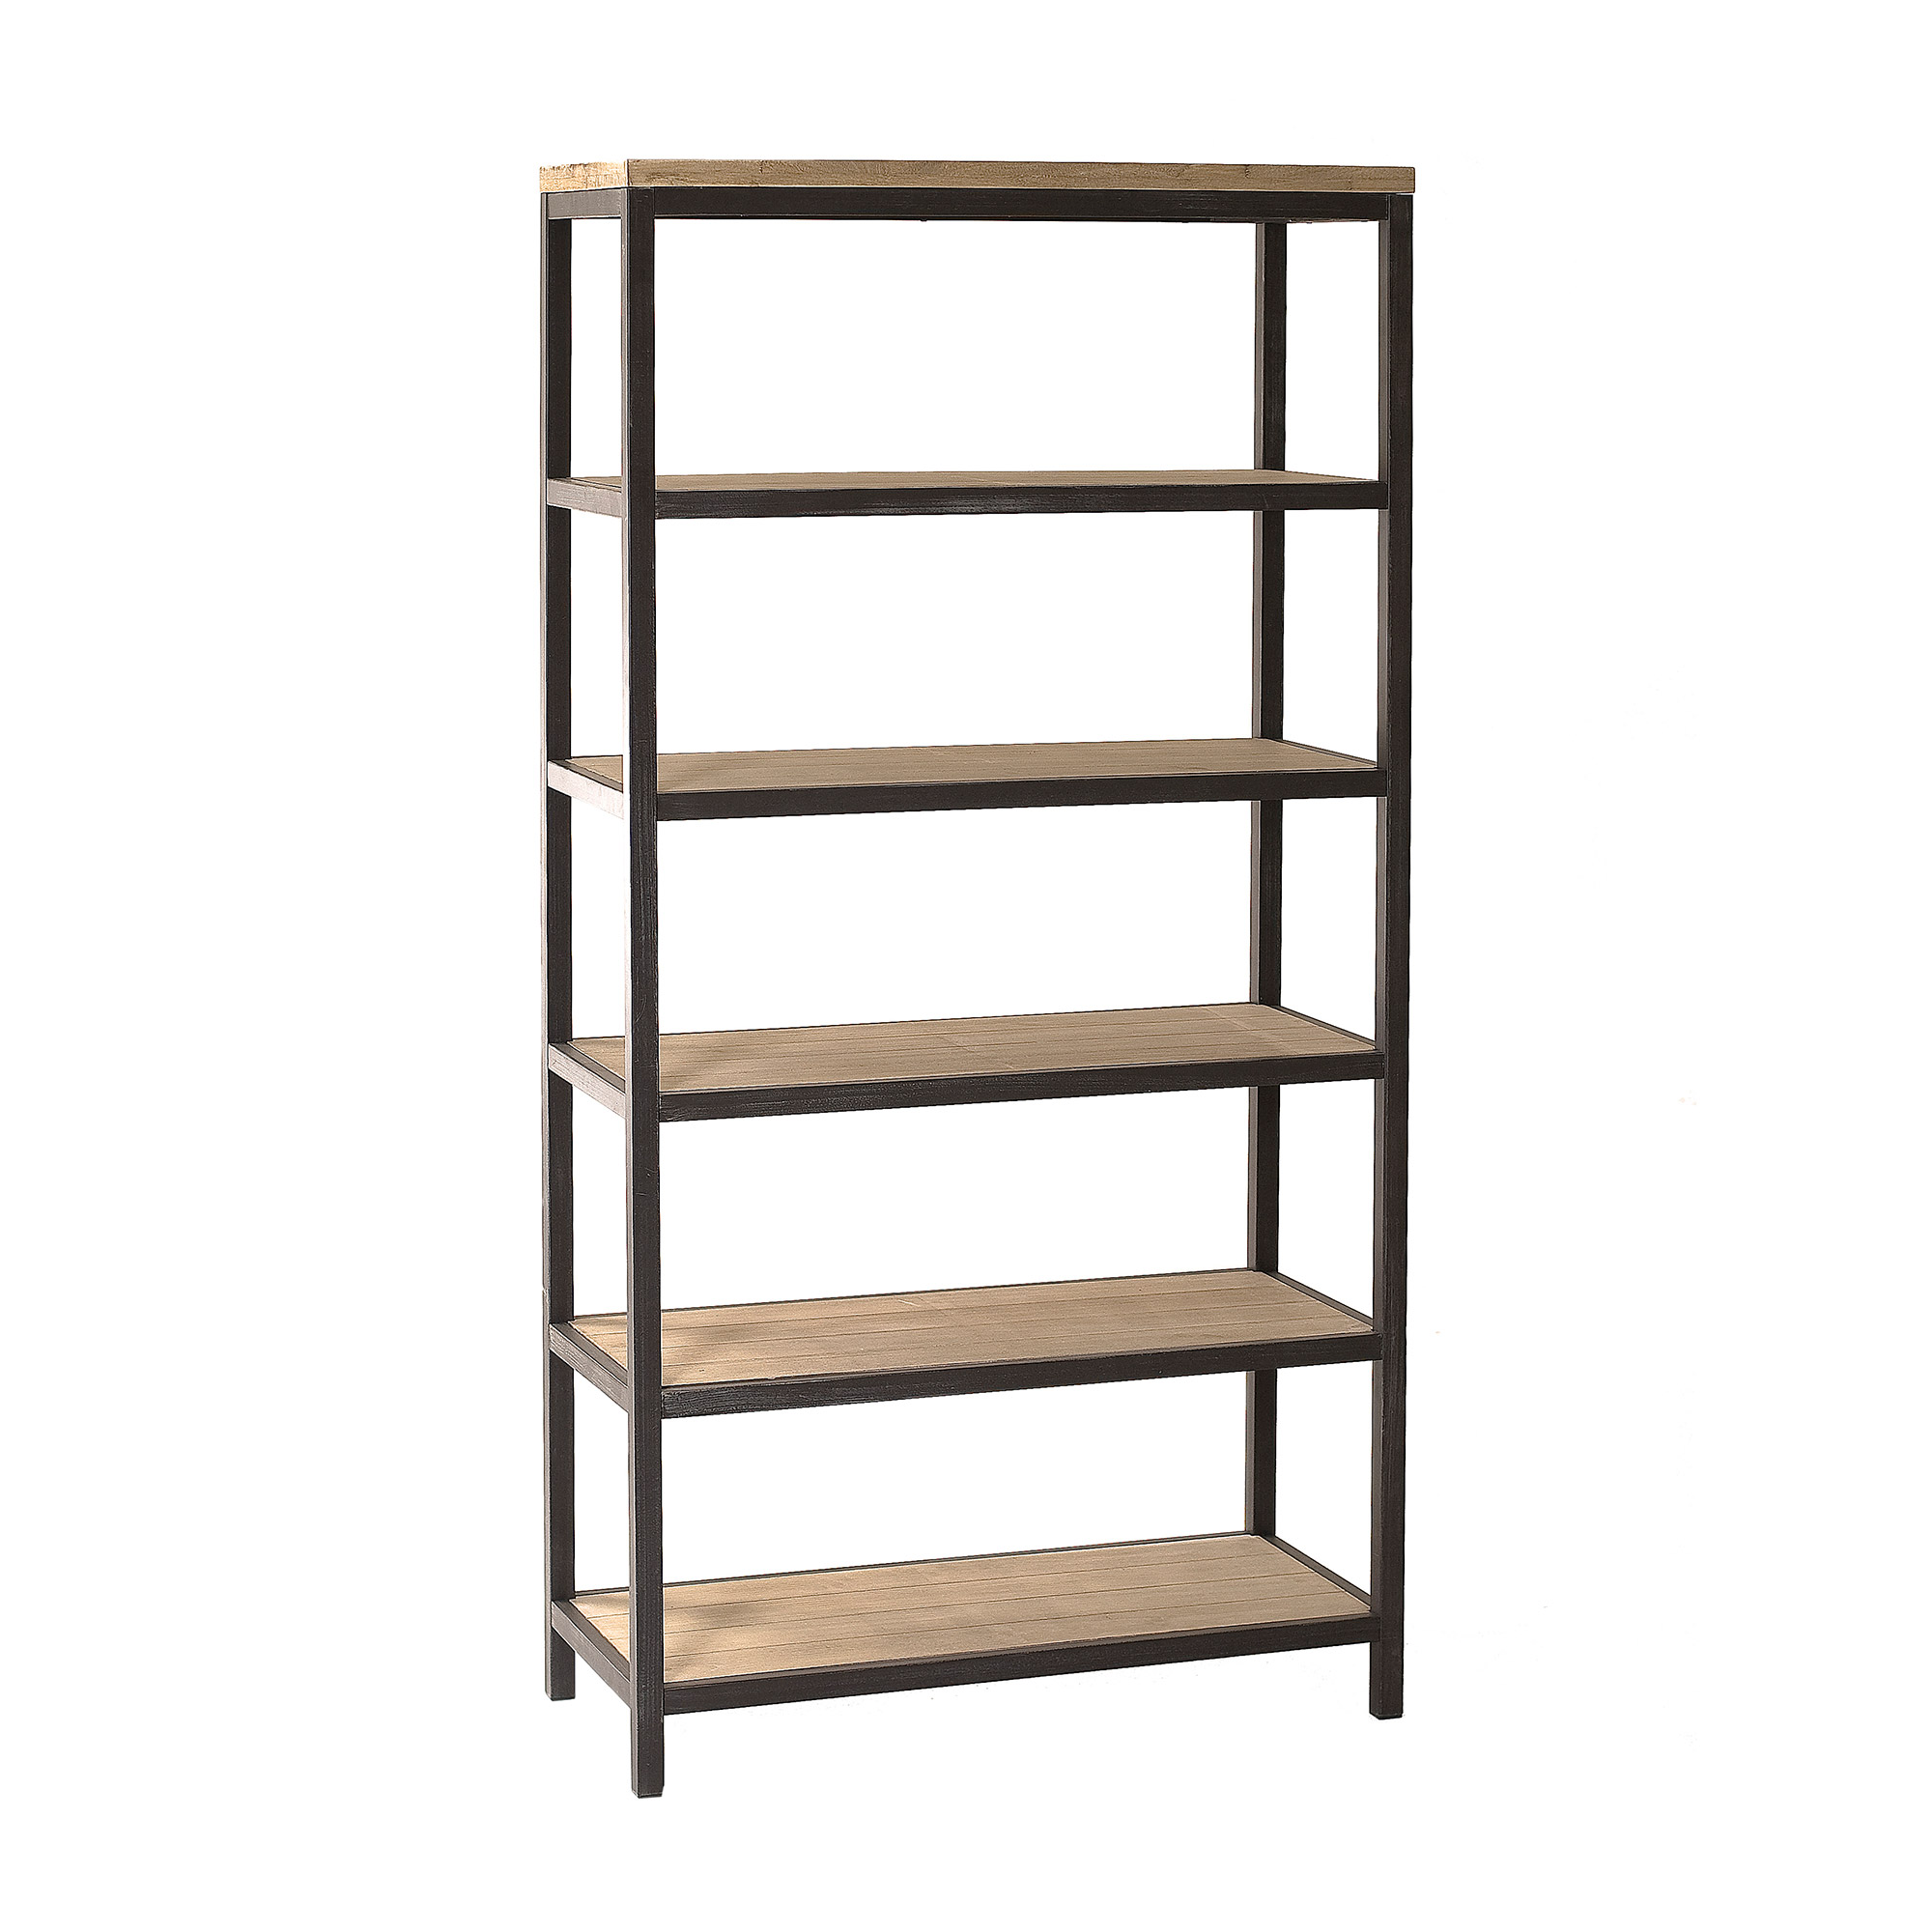 etagere bois et metal id es de d coration int rieure french decor. Black Bedroom Furniture Sets. Home Design Ideas